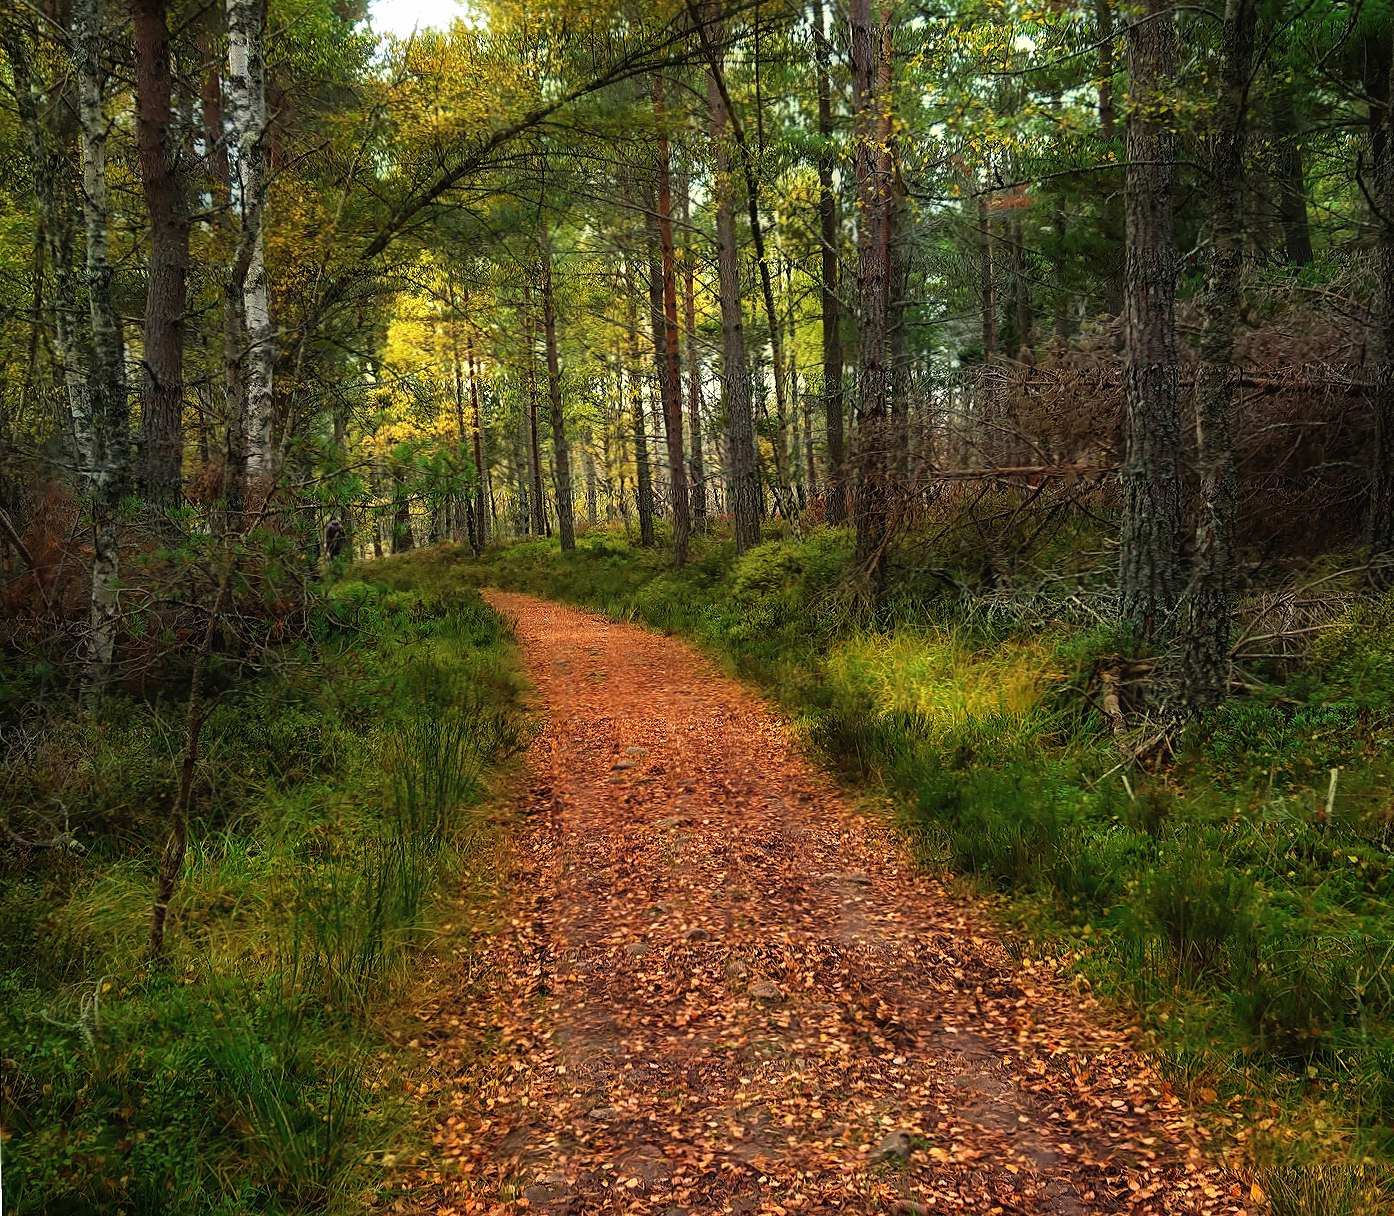 Woodland path wallpapers HD quality